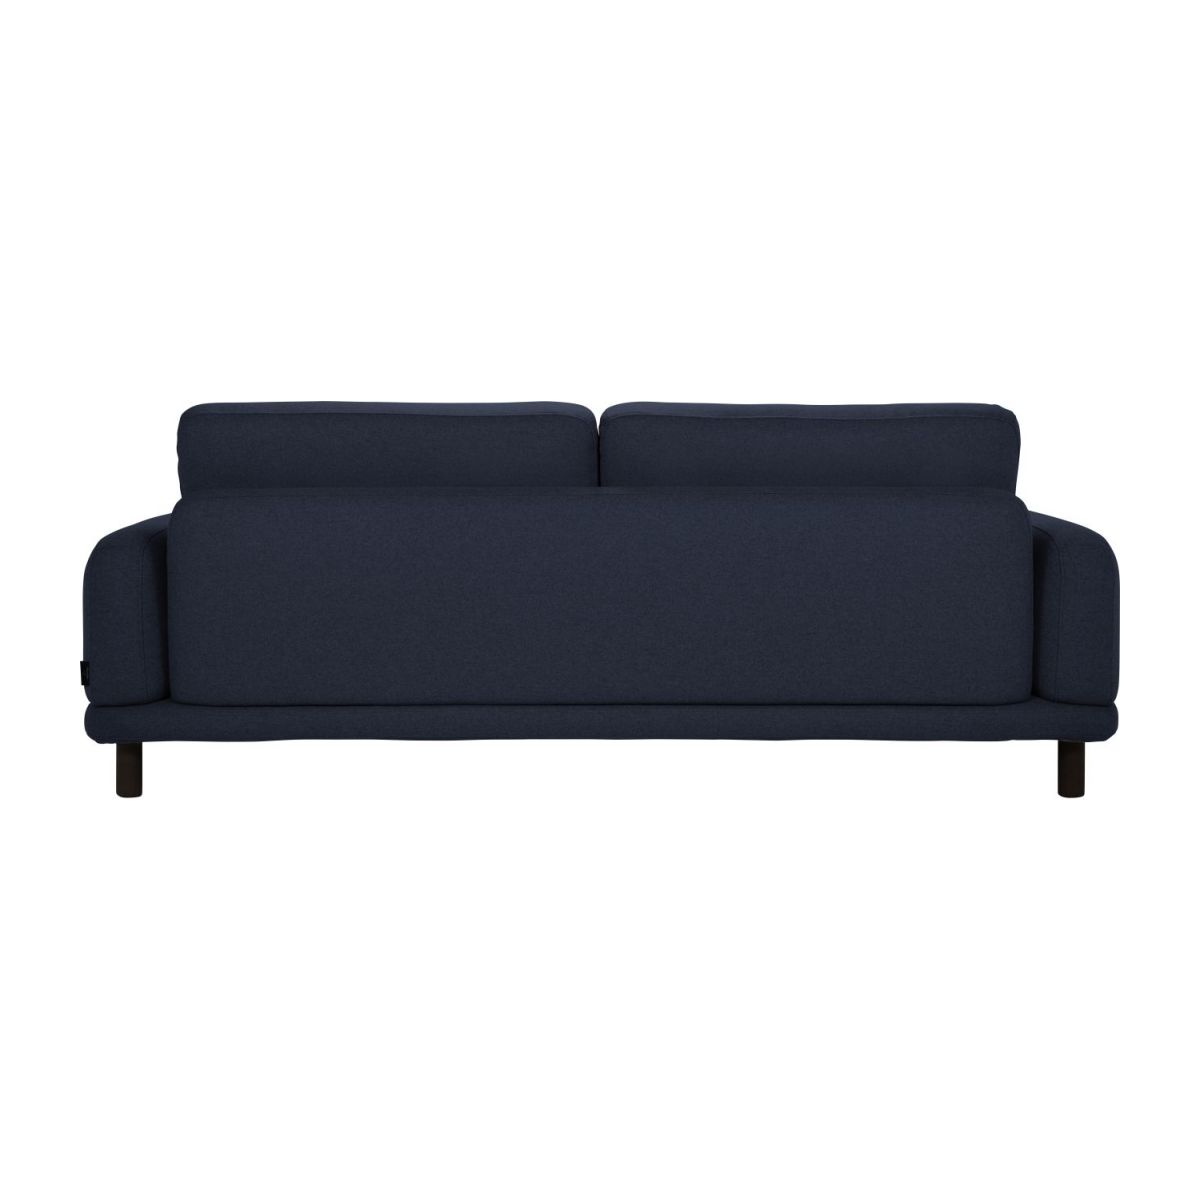 3-seater sofa in wool felt n°3